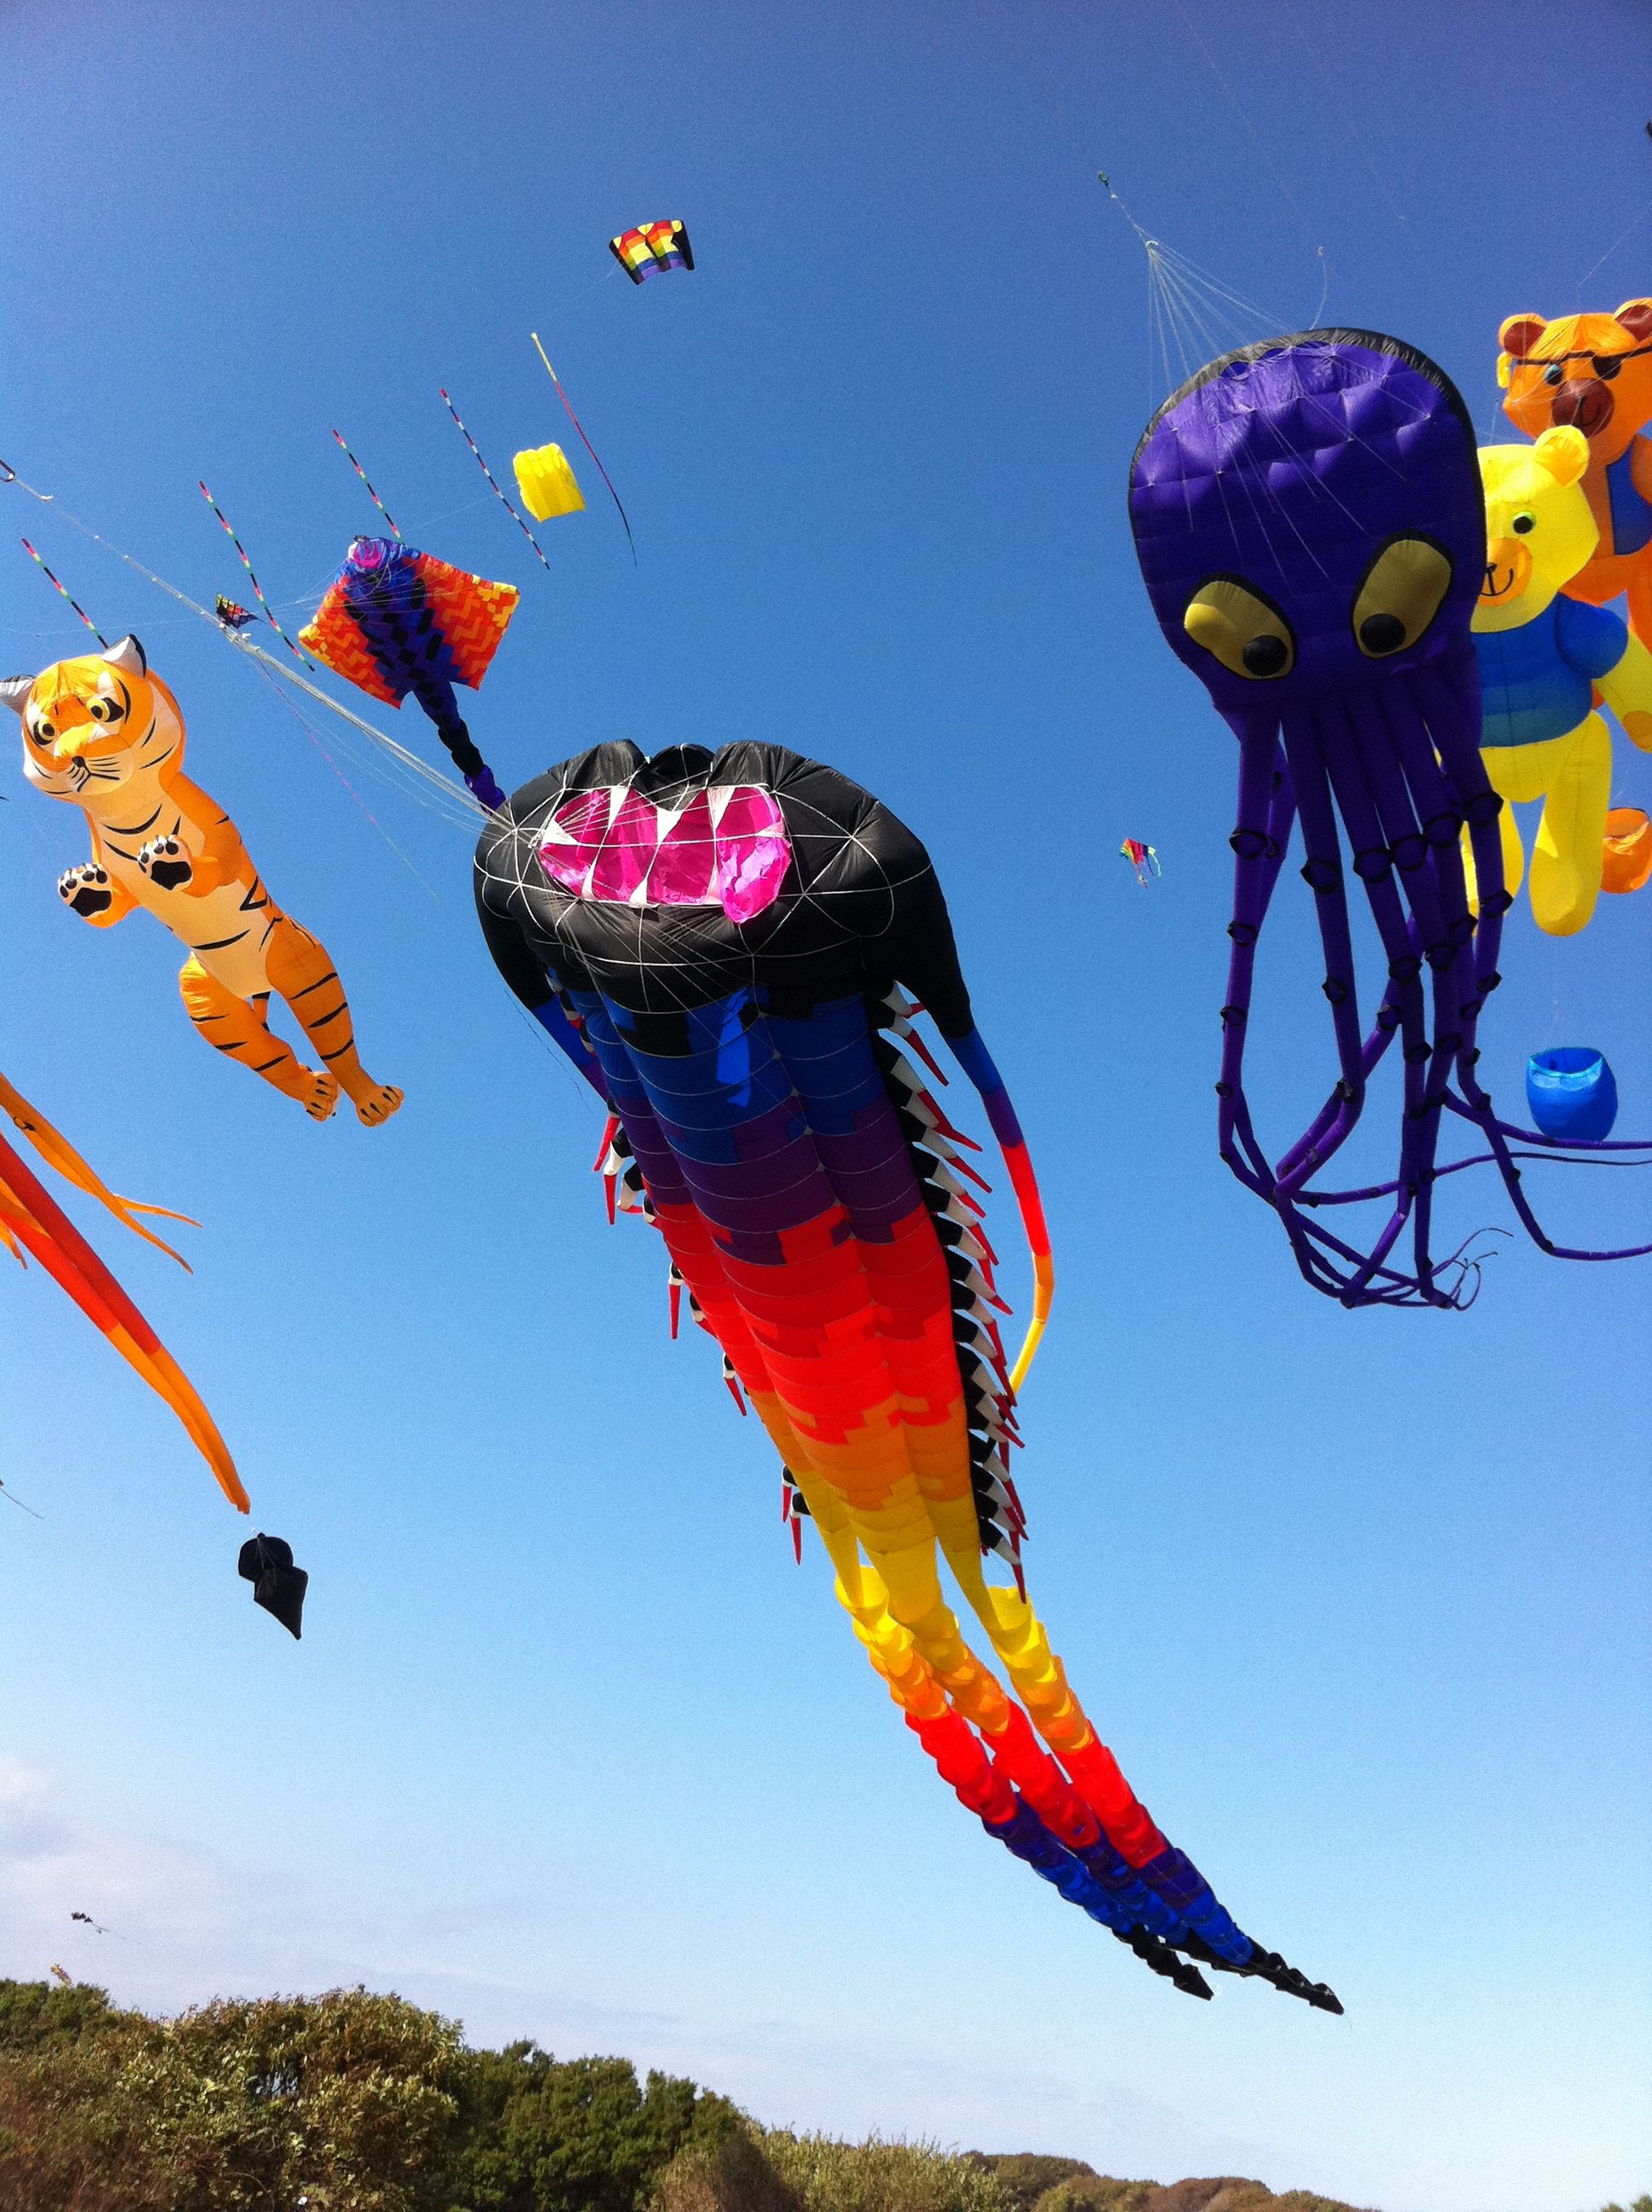 Brenton Point Kites What A Variety Of Large Kites And